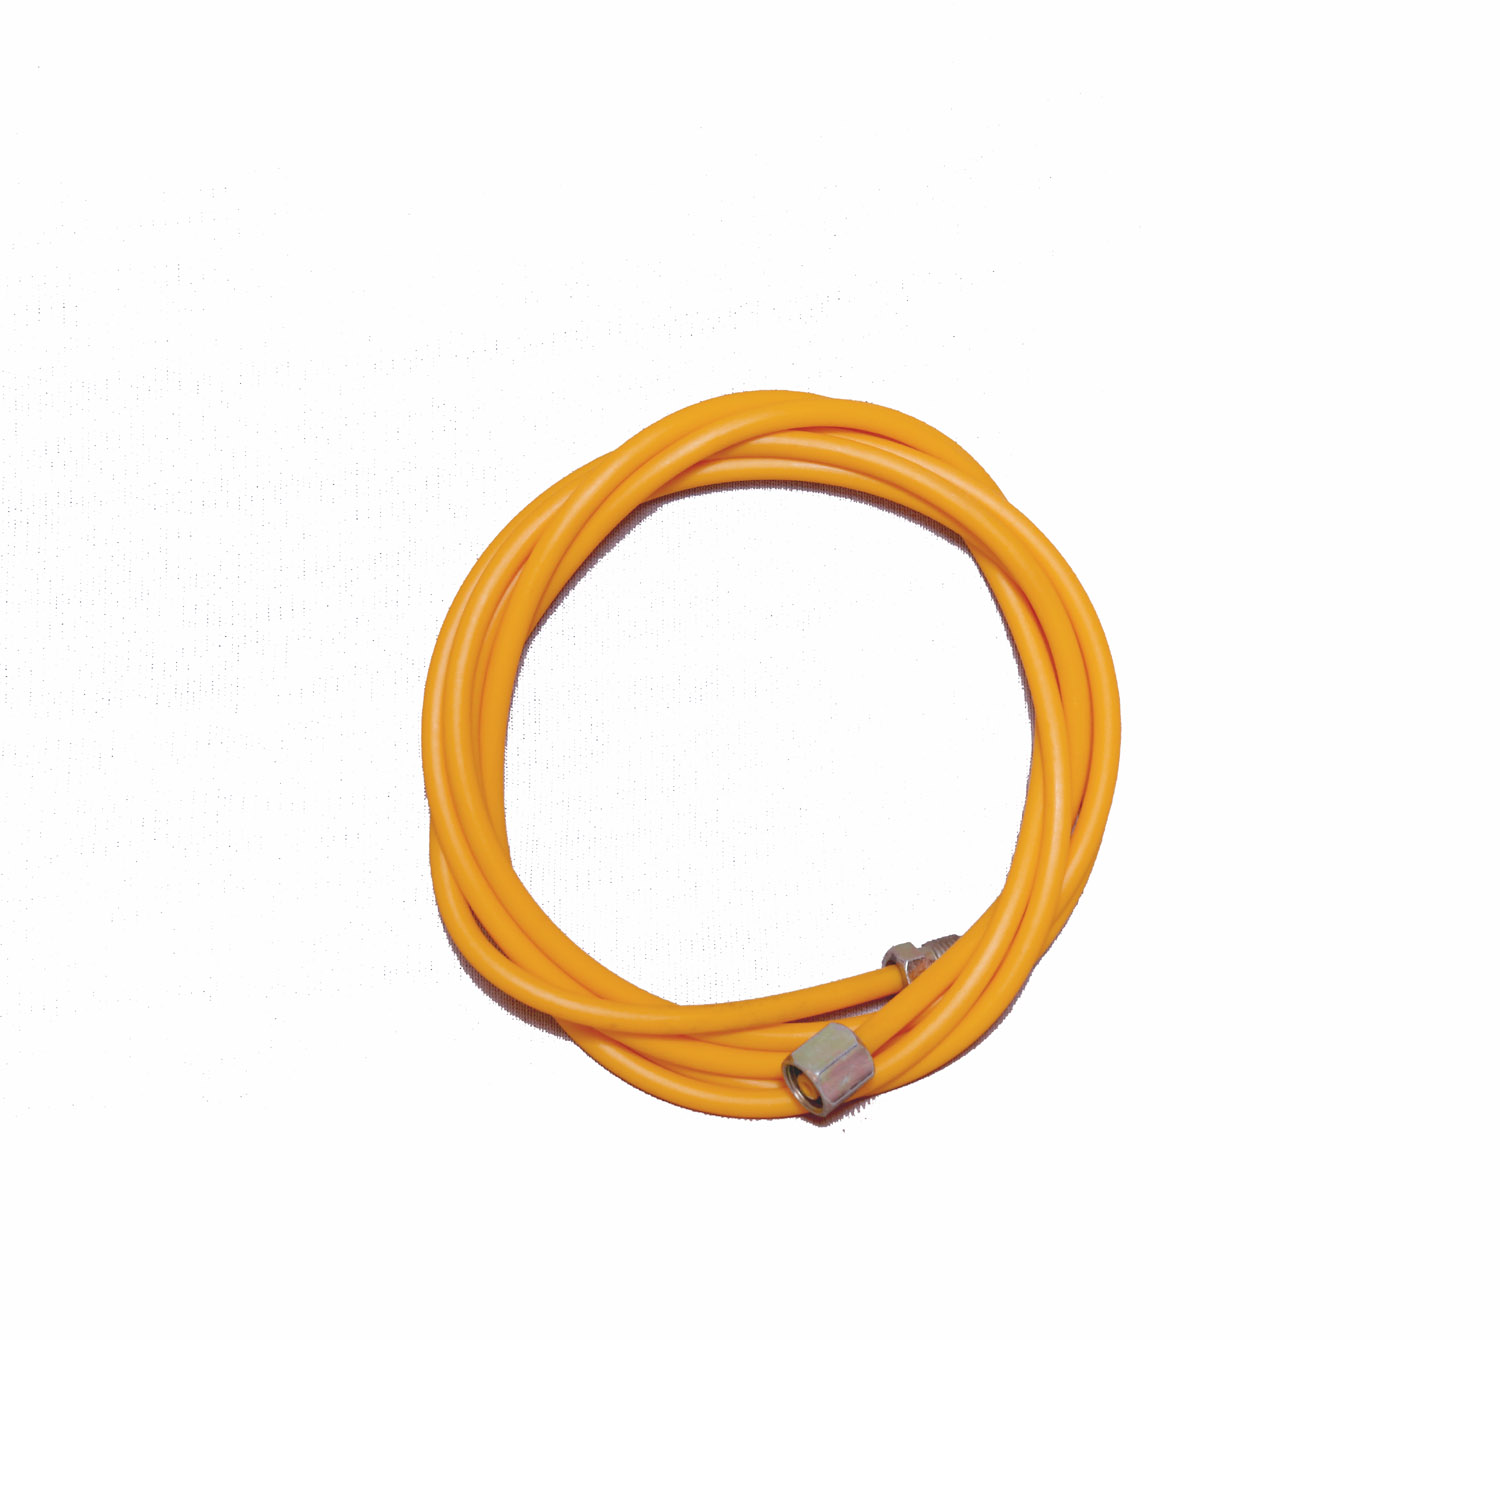 HELLA 329348001 Yellow Hose Pipe (6 Feet) for HHH